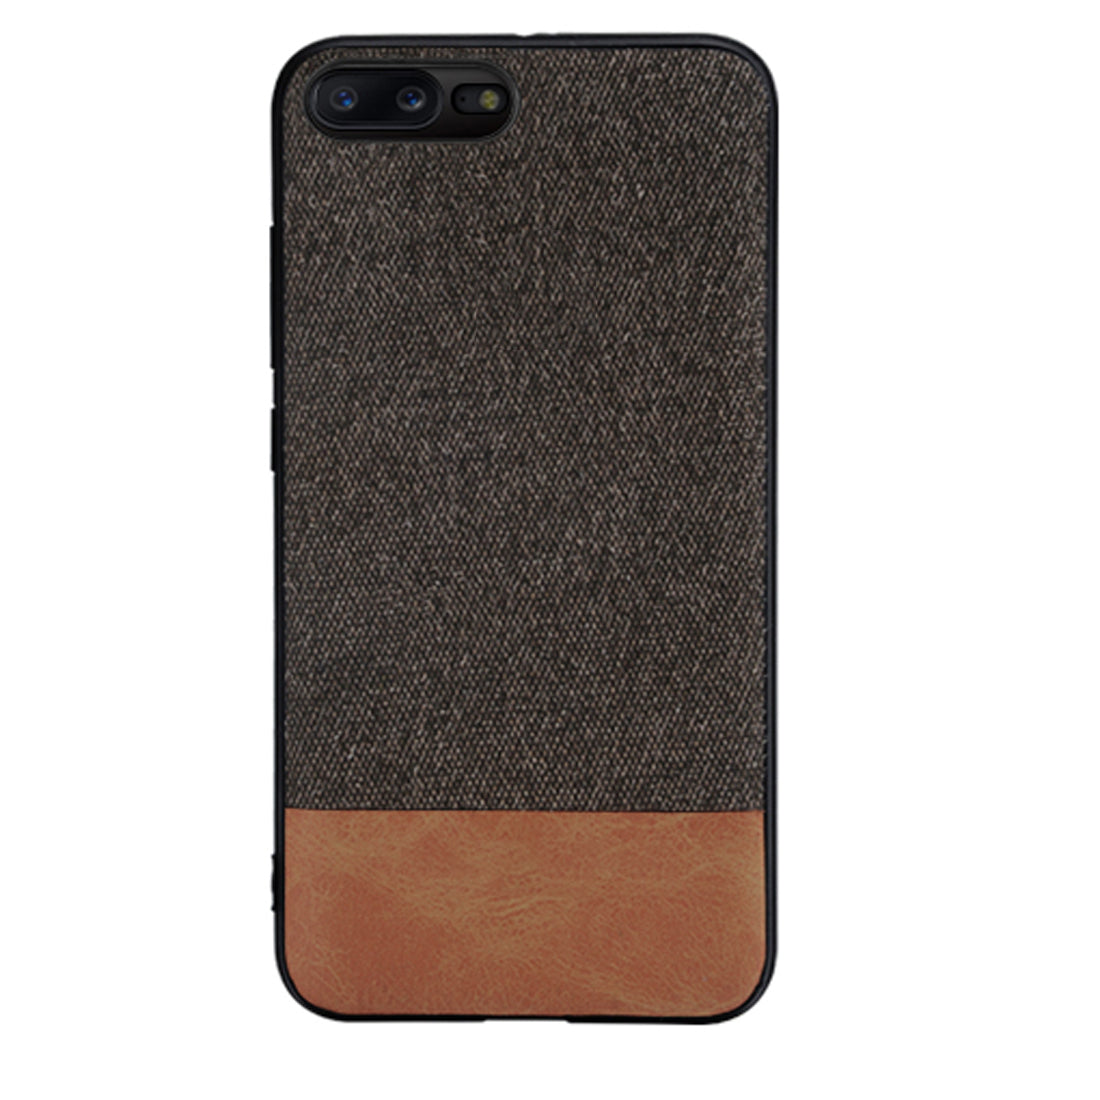 Fabric + Leather Hybrid Protective Case Cover for Oneplus 5 -  Brown - Mobizang